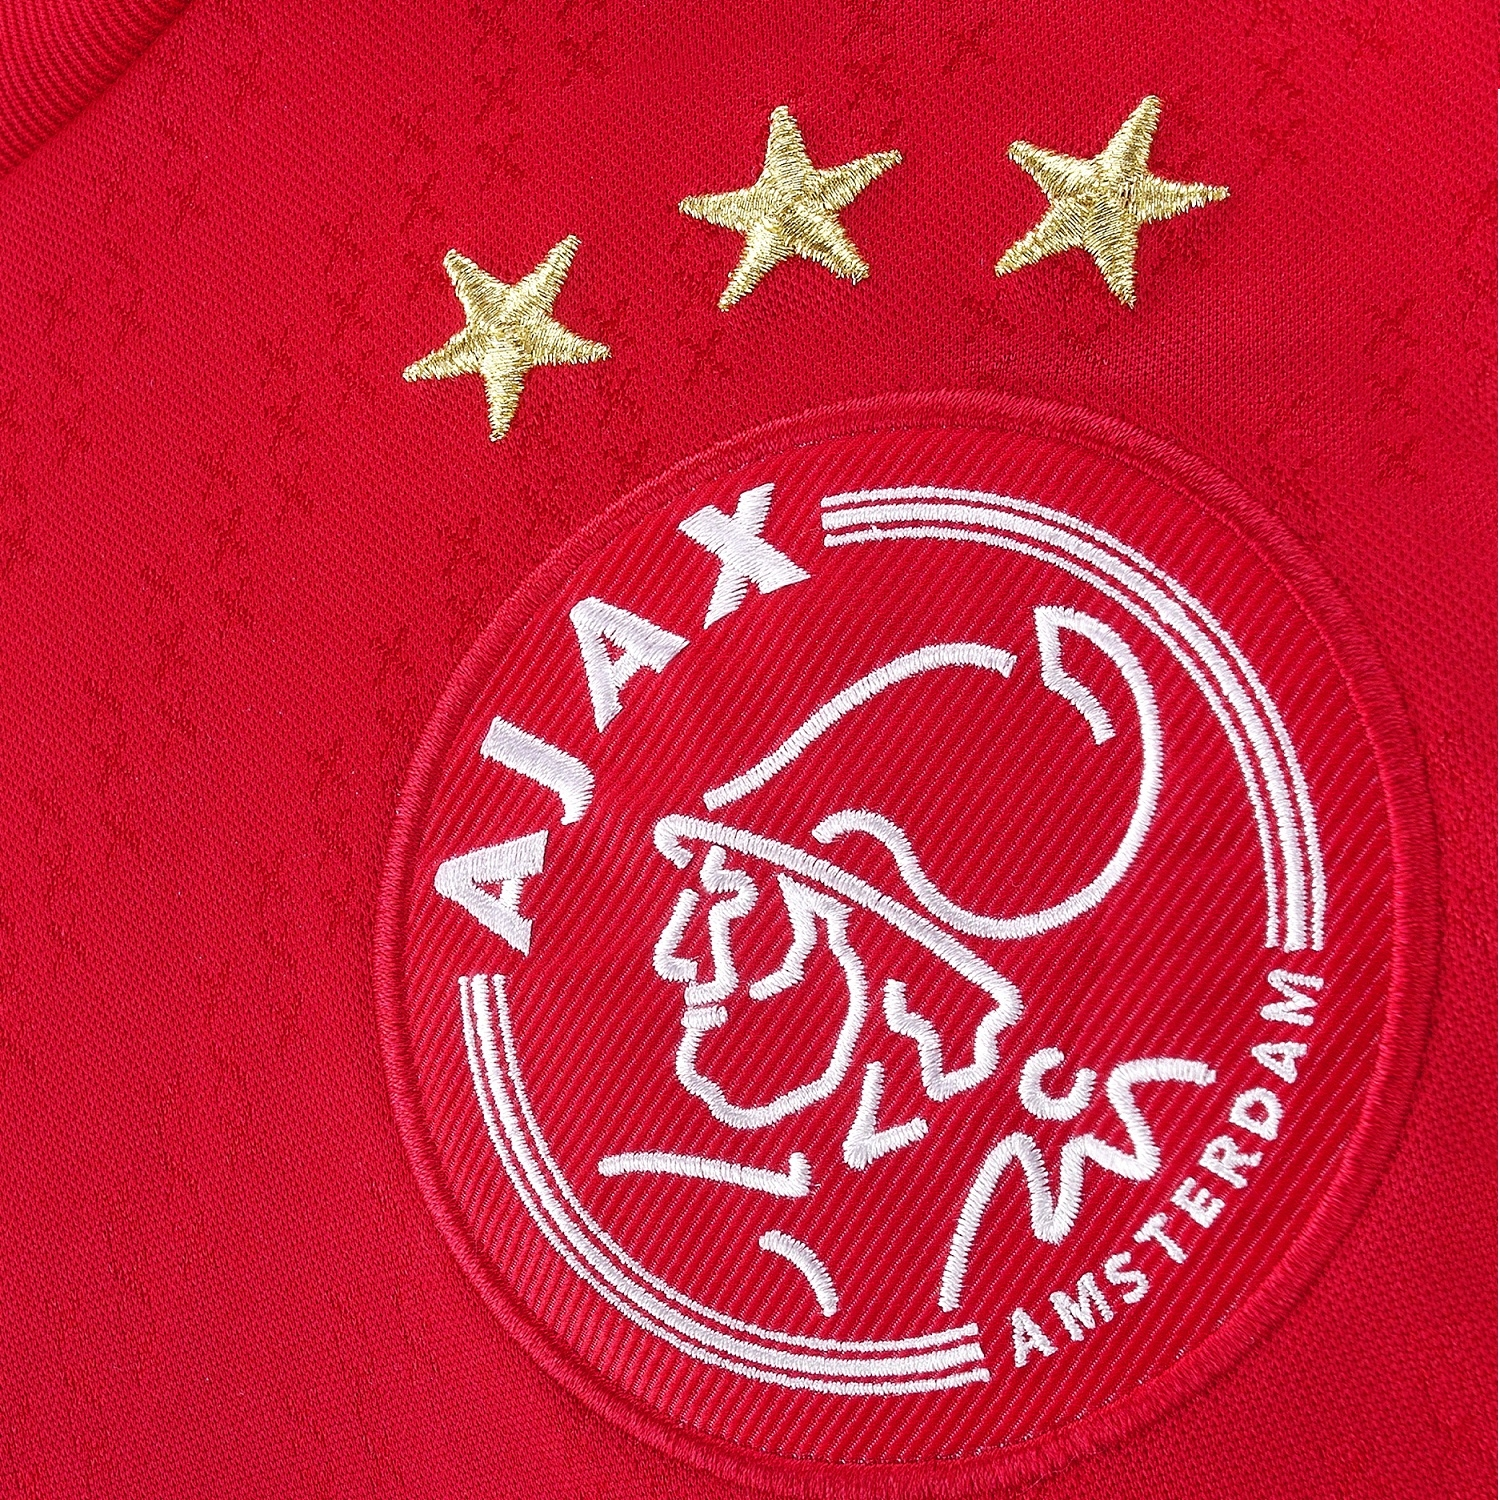 Ajax 13-14 (2013-14) Home and Away Kits Released